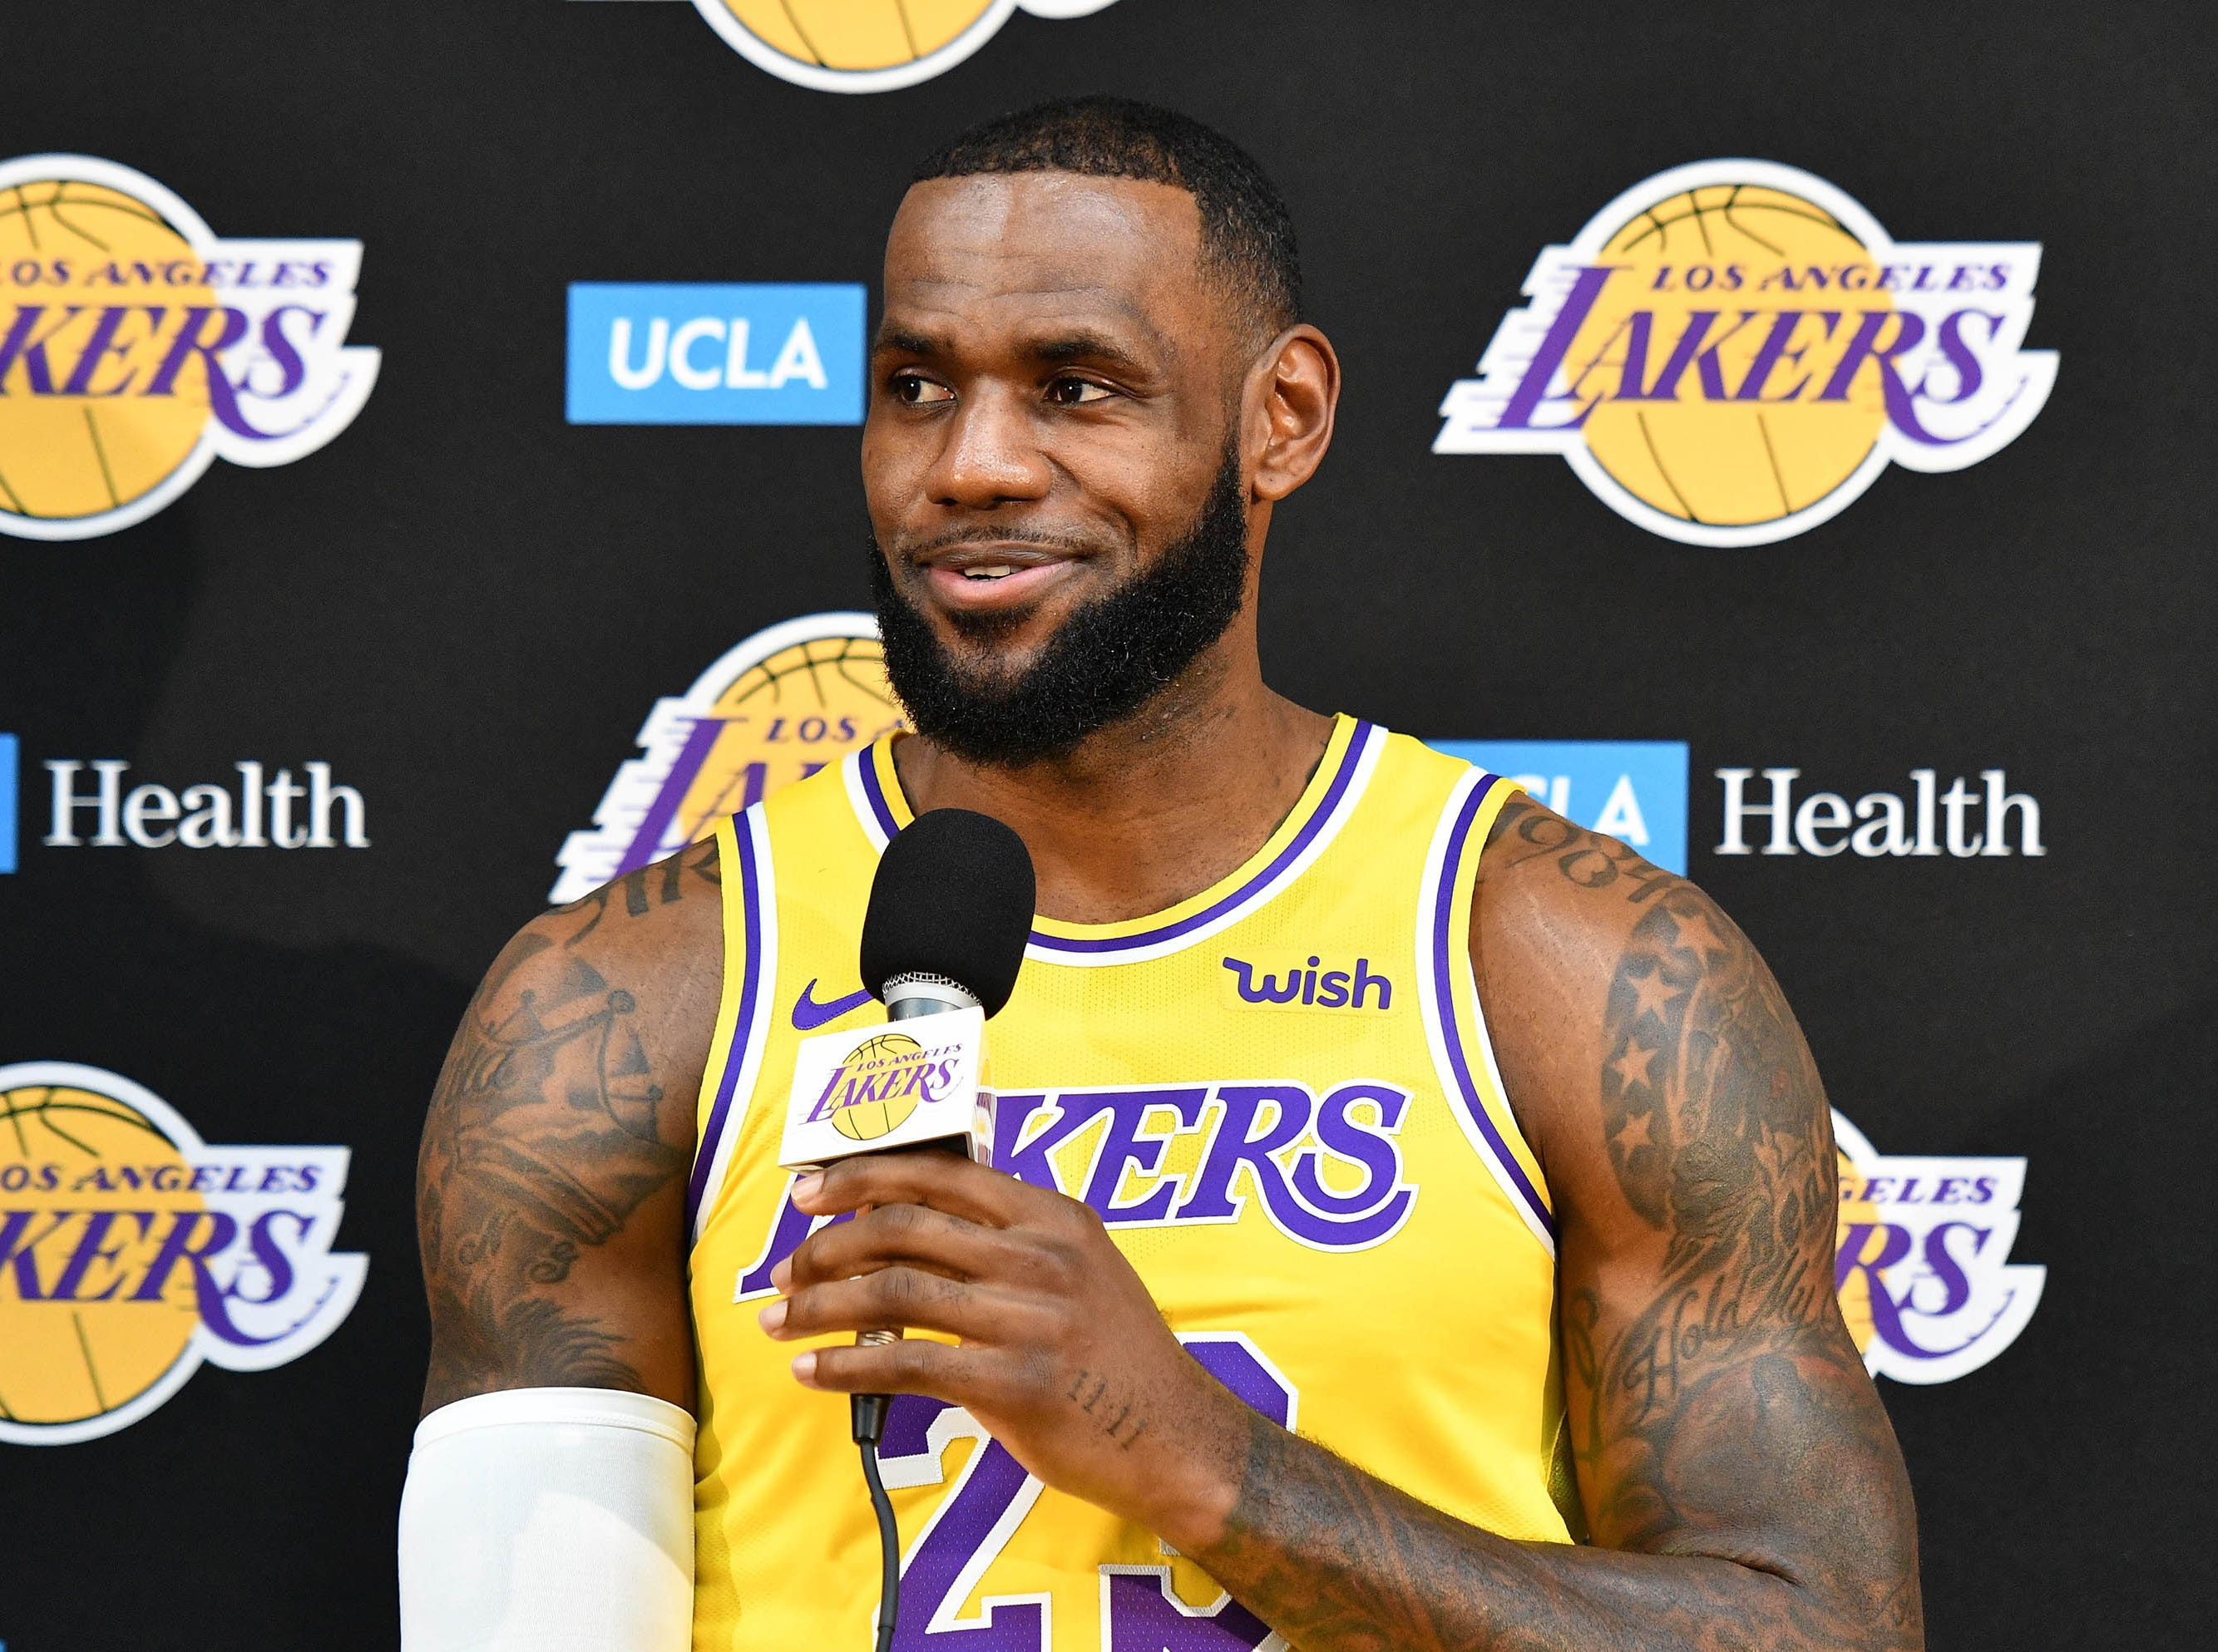 LeBron James attends his first NBA Media Day as a member of the Los Angeles Lakers.